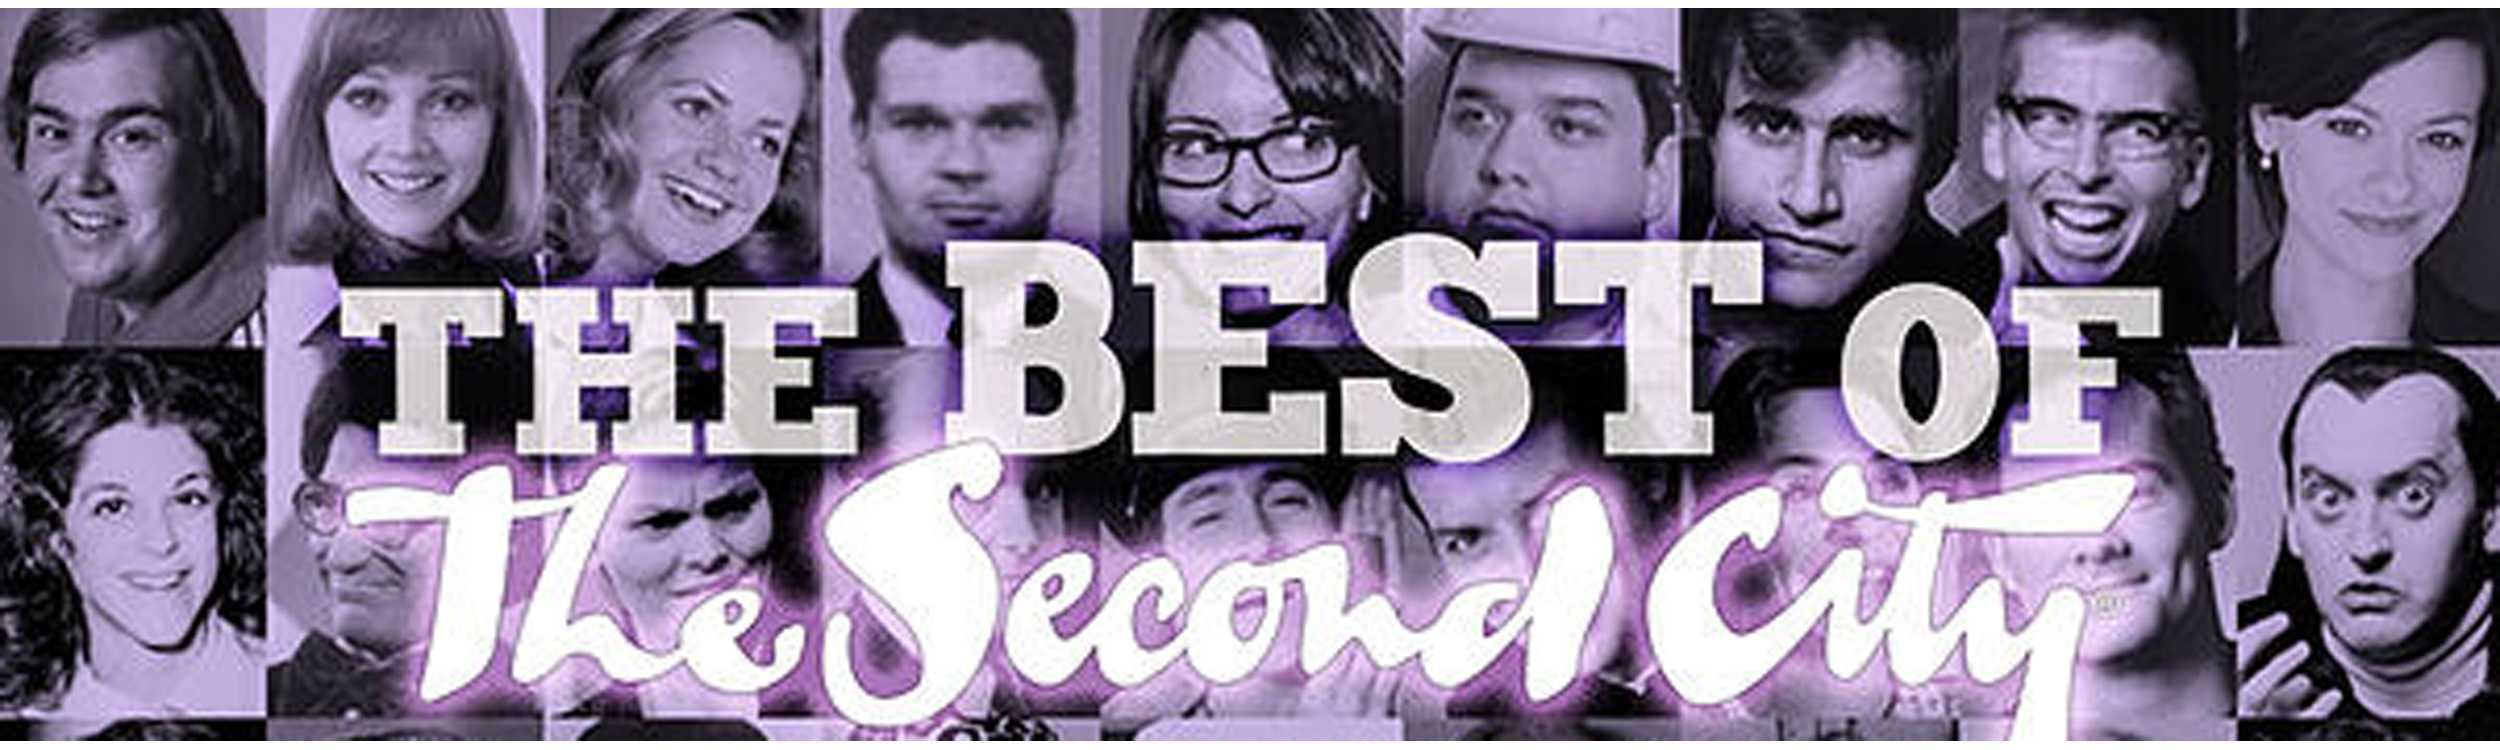 Second City comes to Niles North